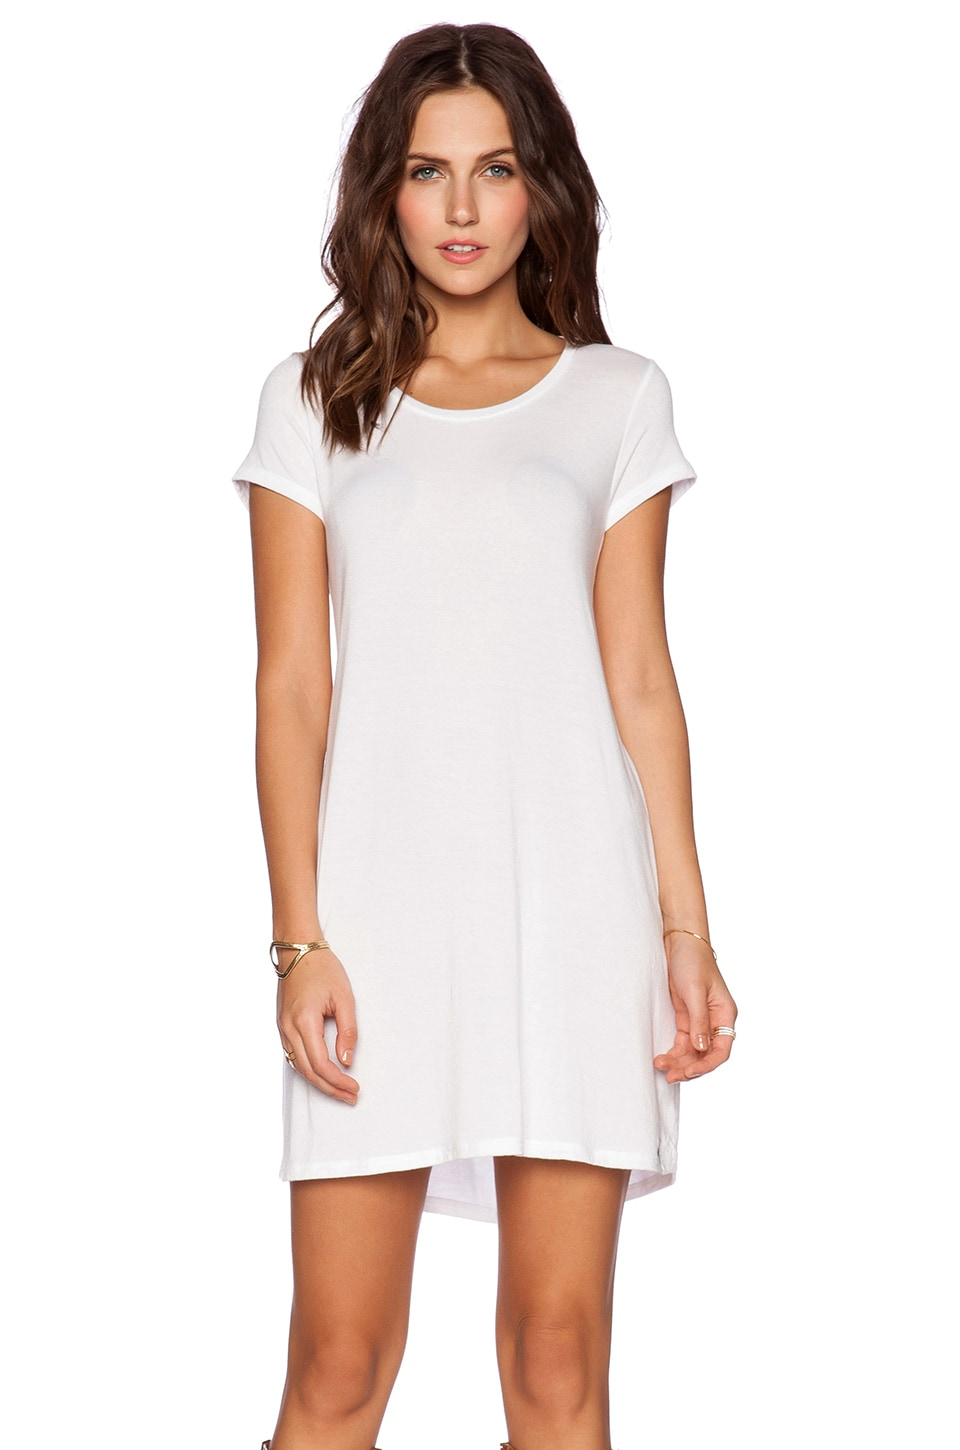 Michael Lauren Cuba T Shirt Dress in White